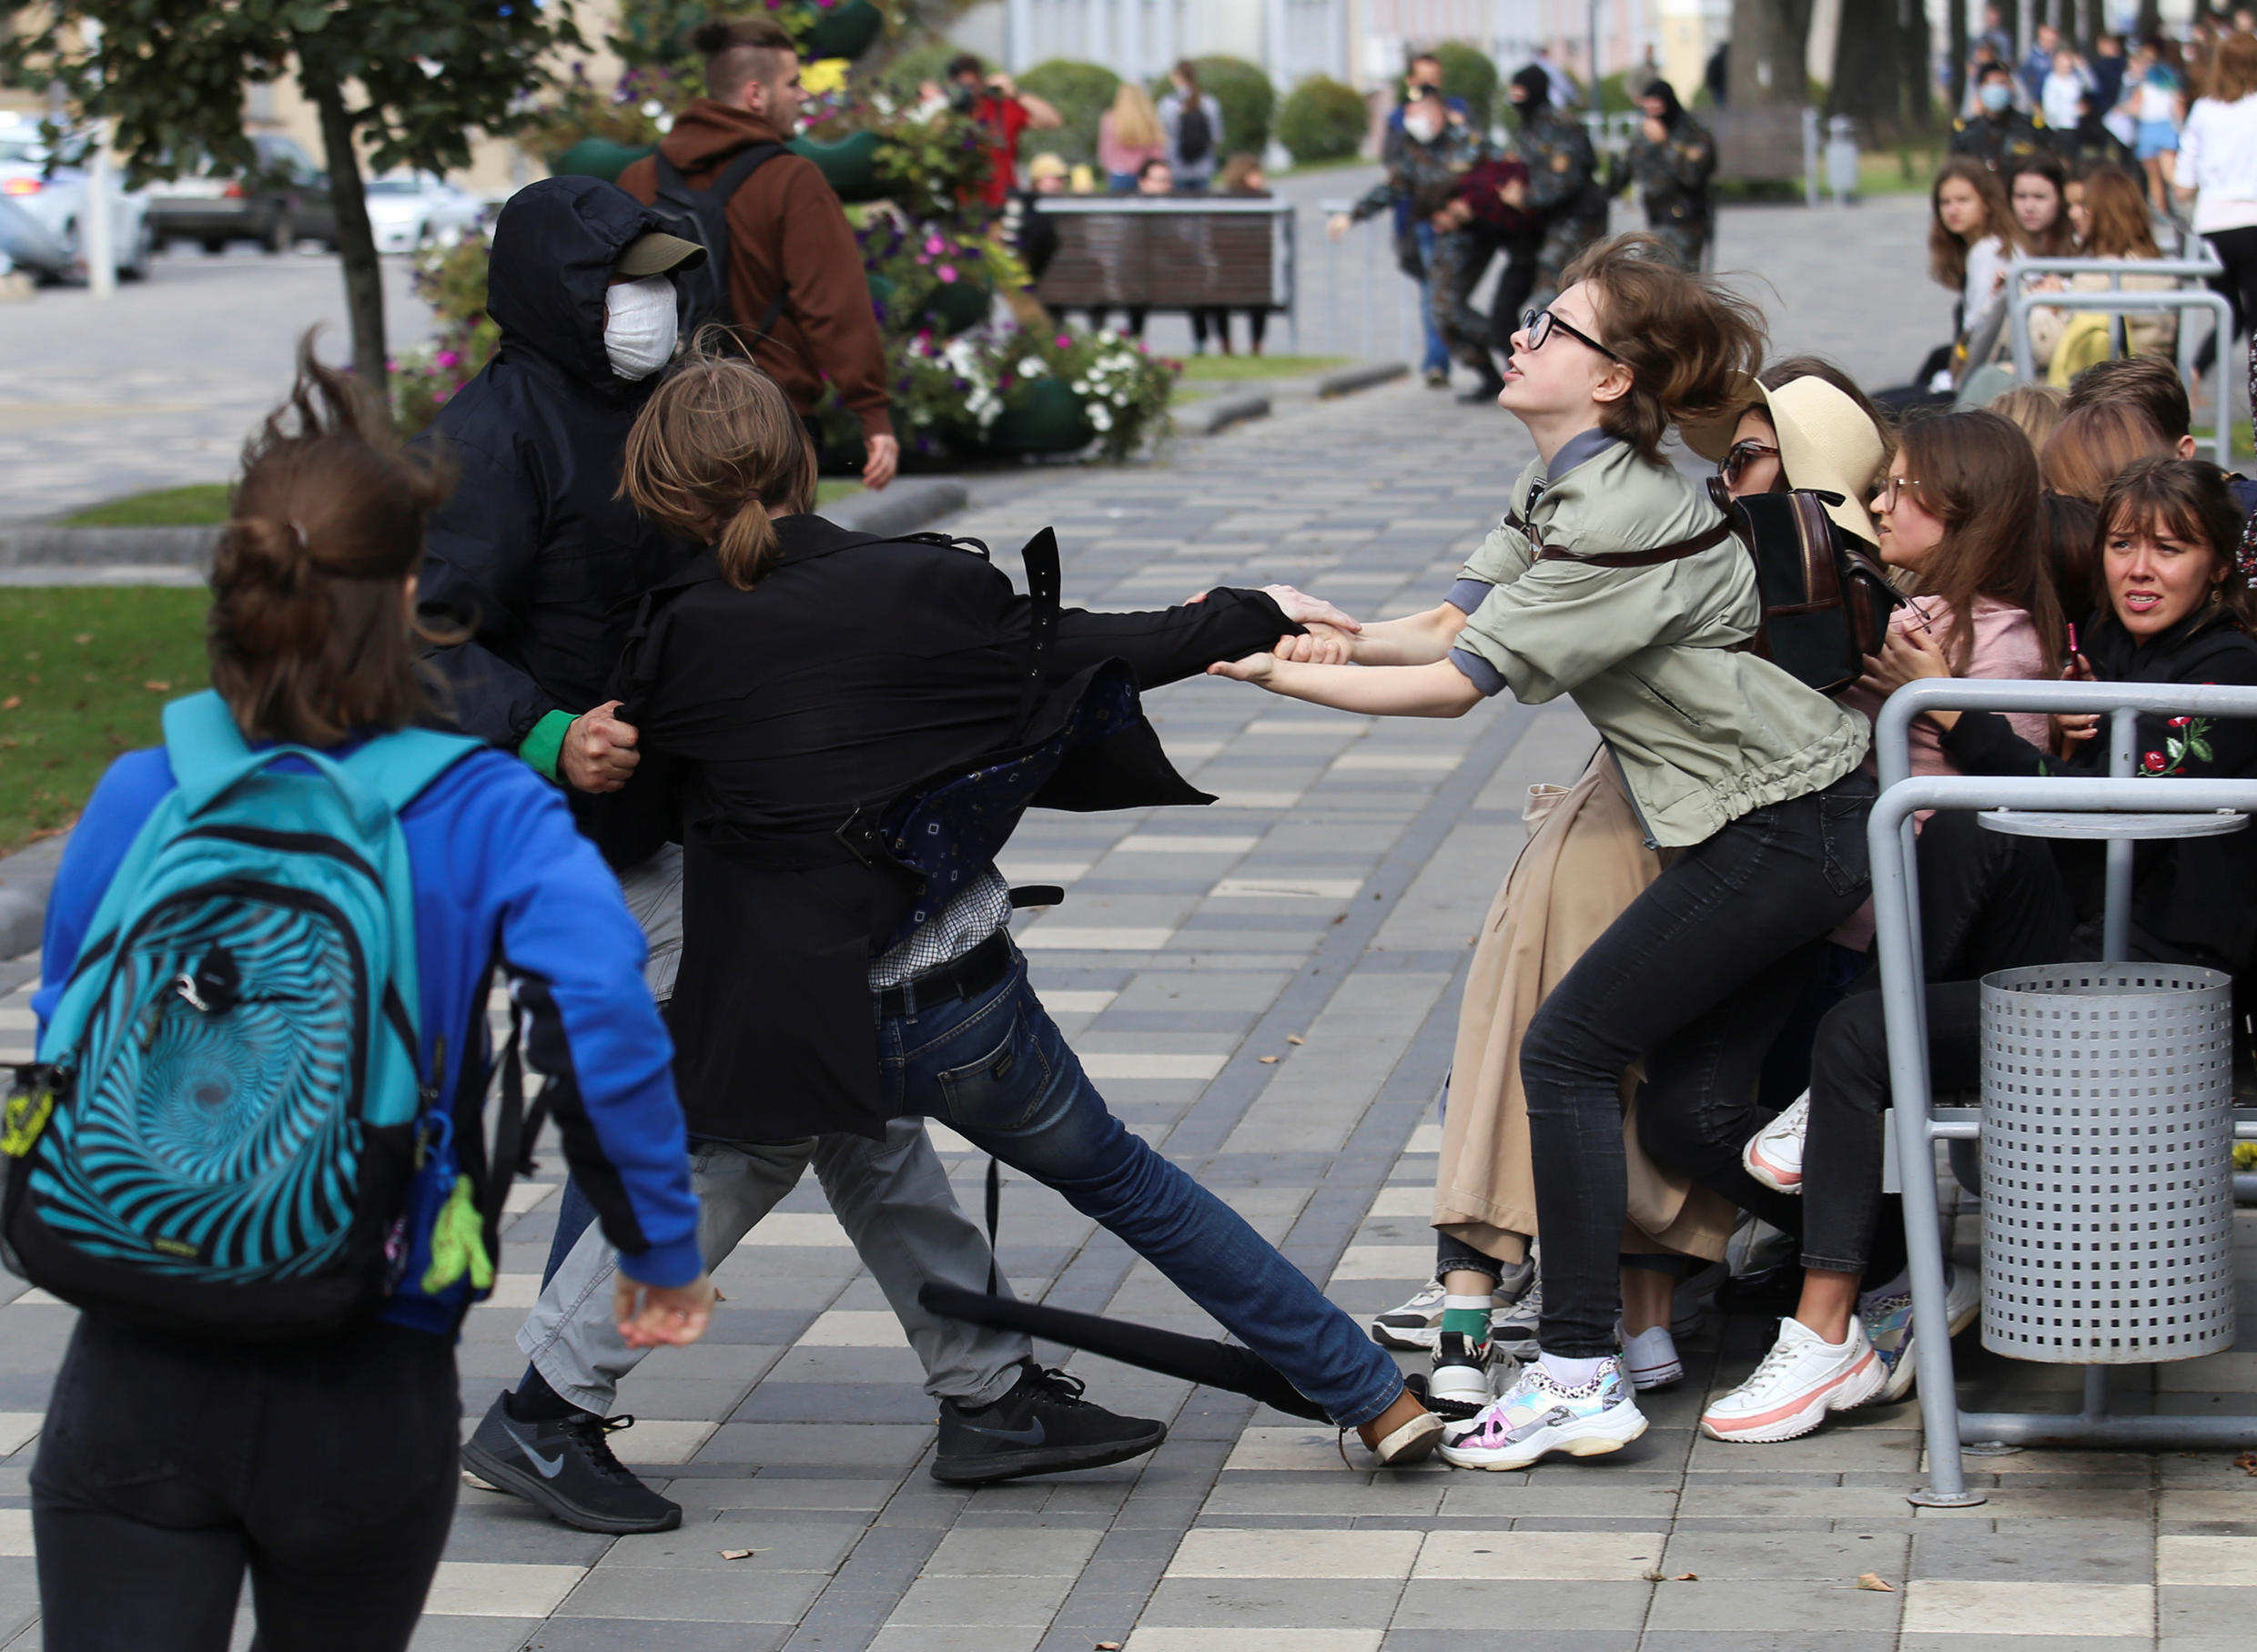 2020-09-01T154207Z_1103955149_RC2RPI938135_RTRMADP_3_BELARUS-ELECTION-PROTESTS-STUDENTS